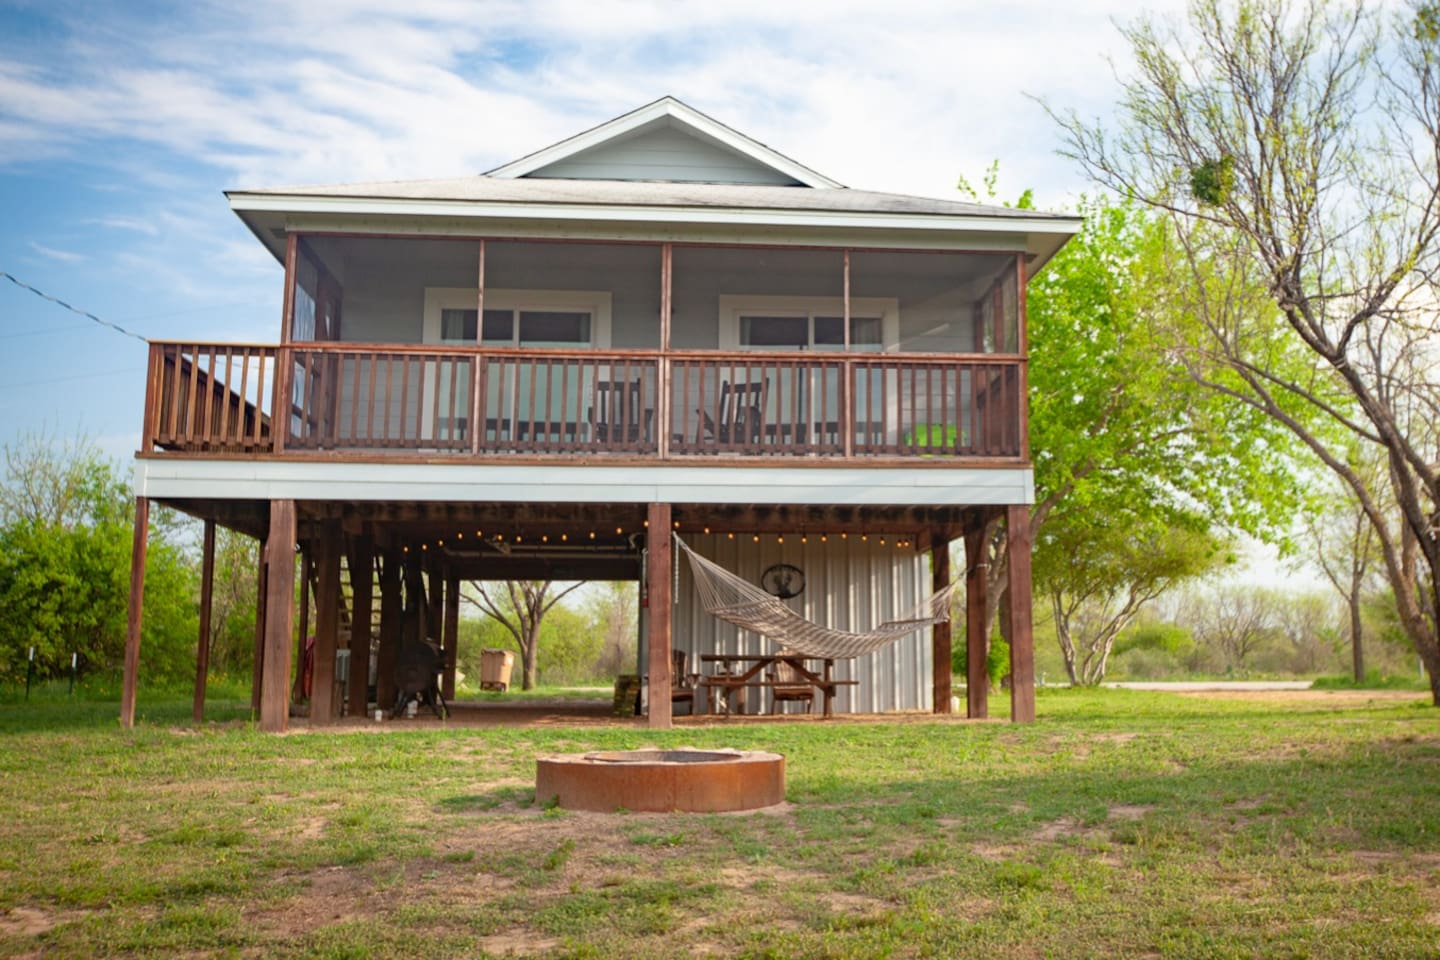 The Llano River House features comfort among wide open spaces in the Texas Hill Country. Elevated view pairs nicely with the screened in porch, hammock, fire pit and picnic table. Make this beach house build your home base for relaxing & exploring!